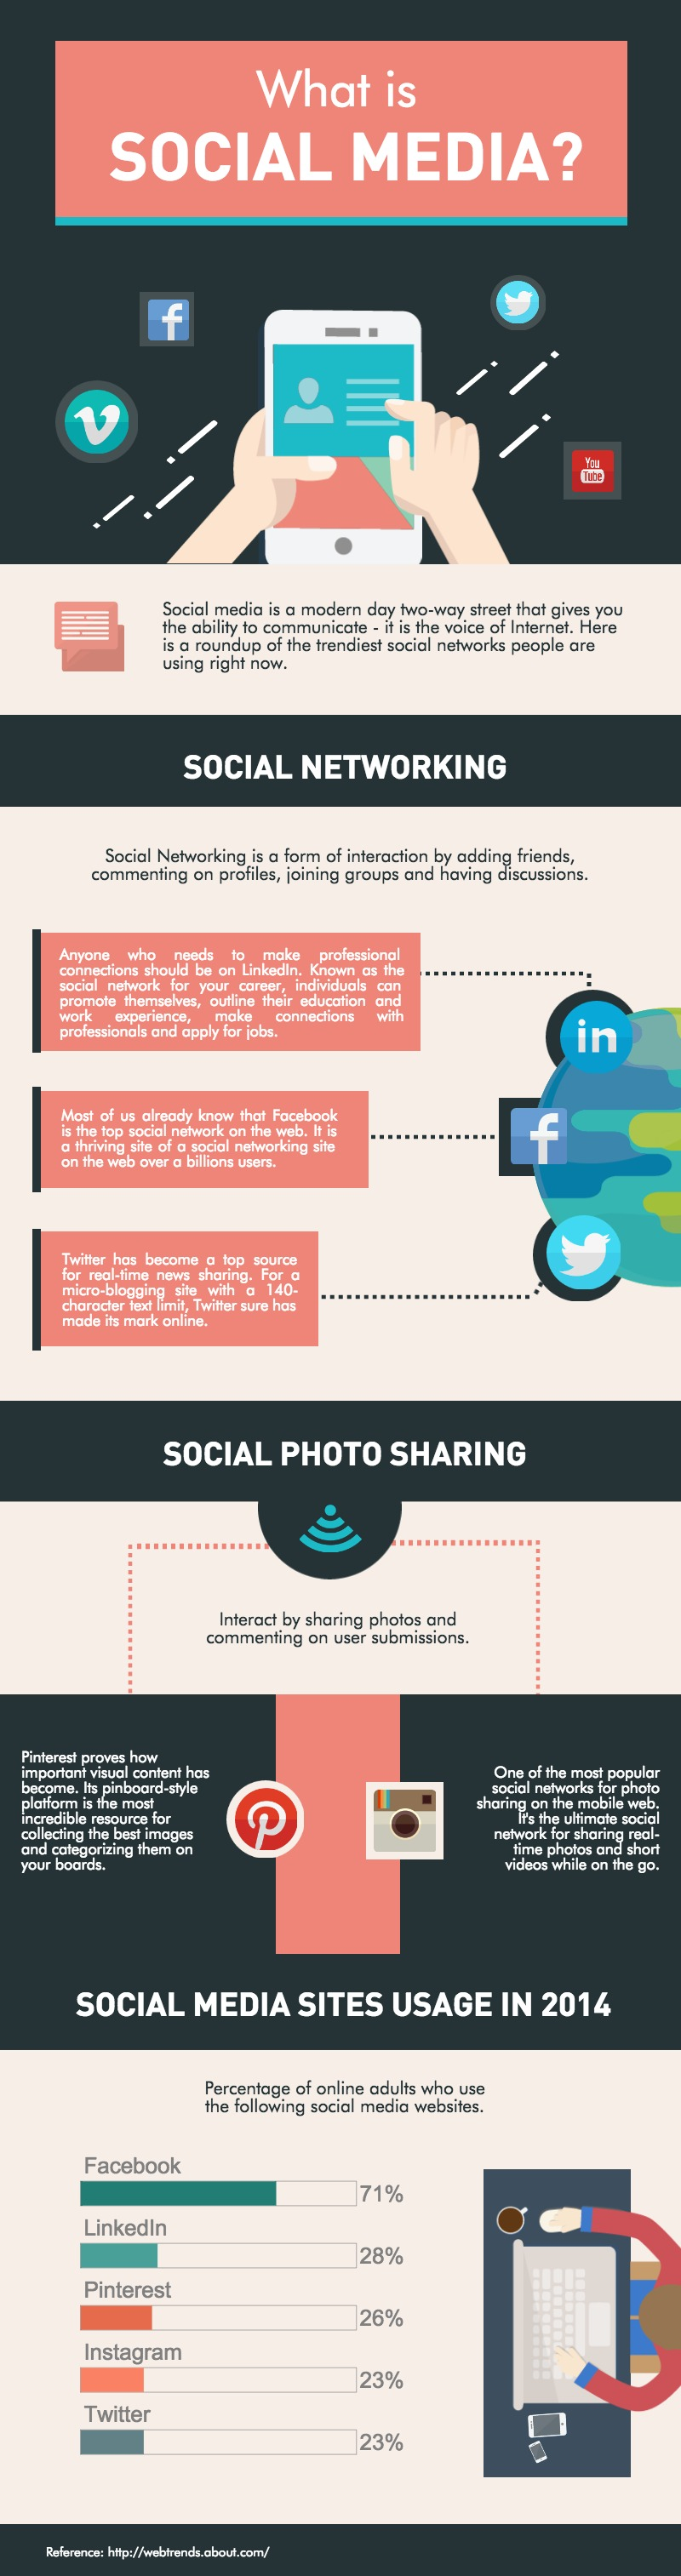 What Is Social Media Social Media Infographic What Is Social Social Media